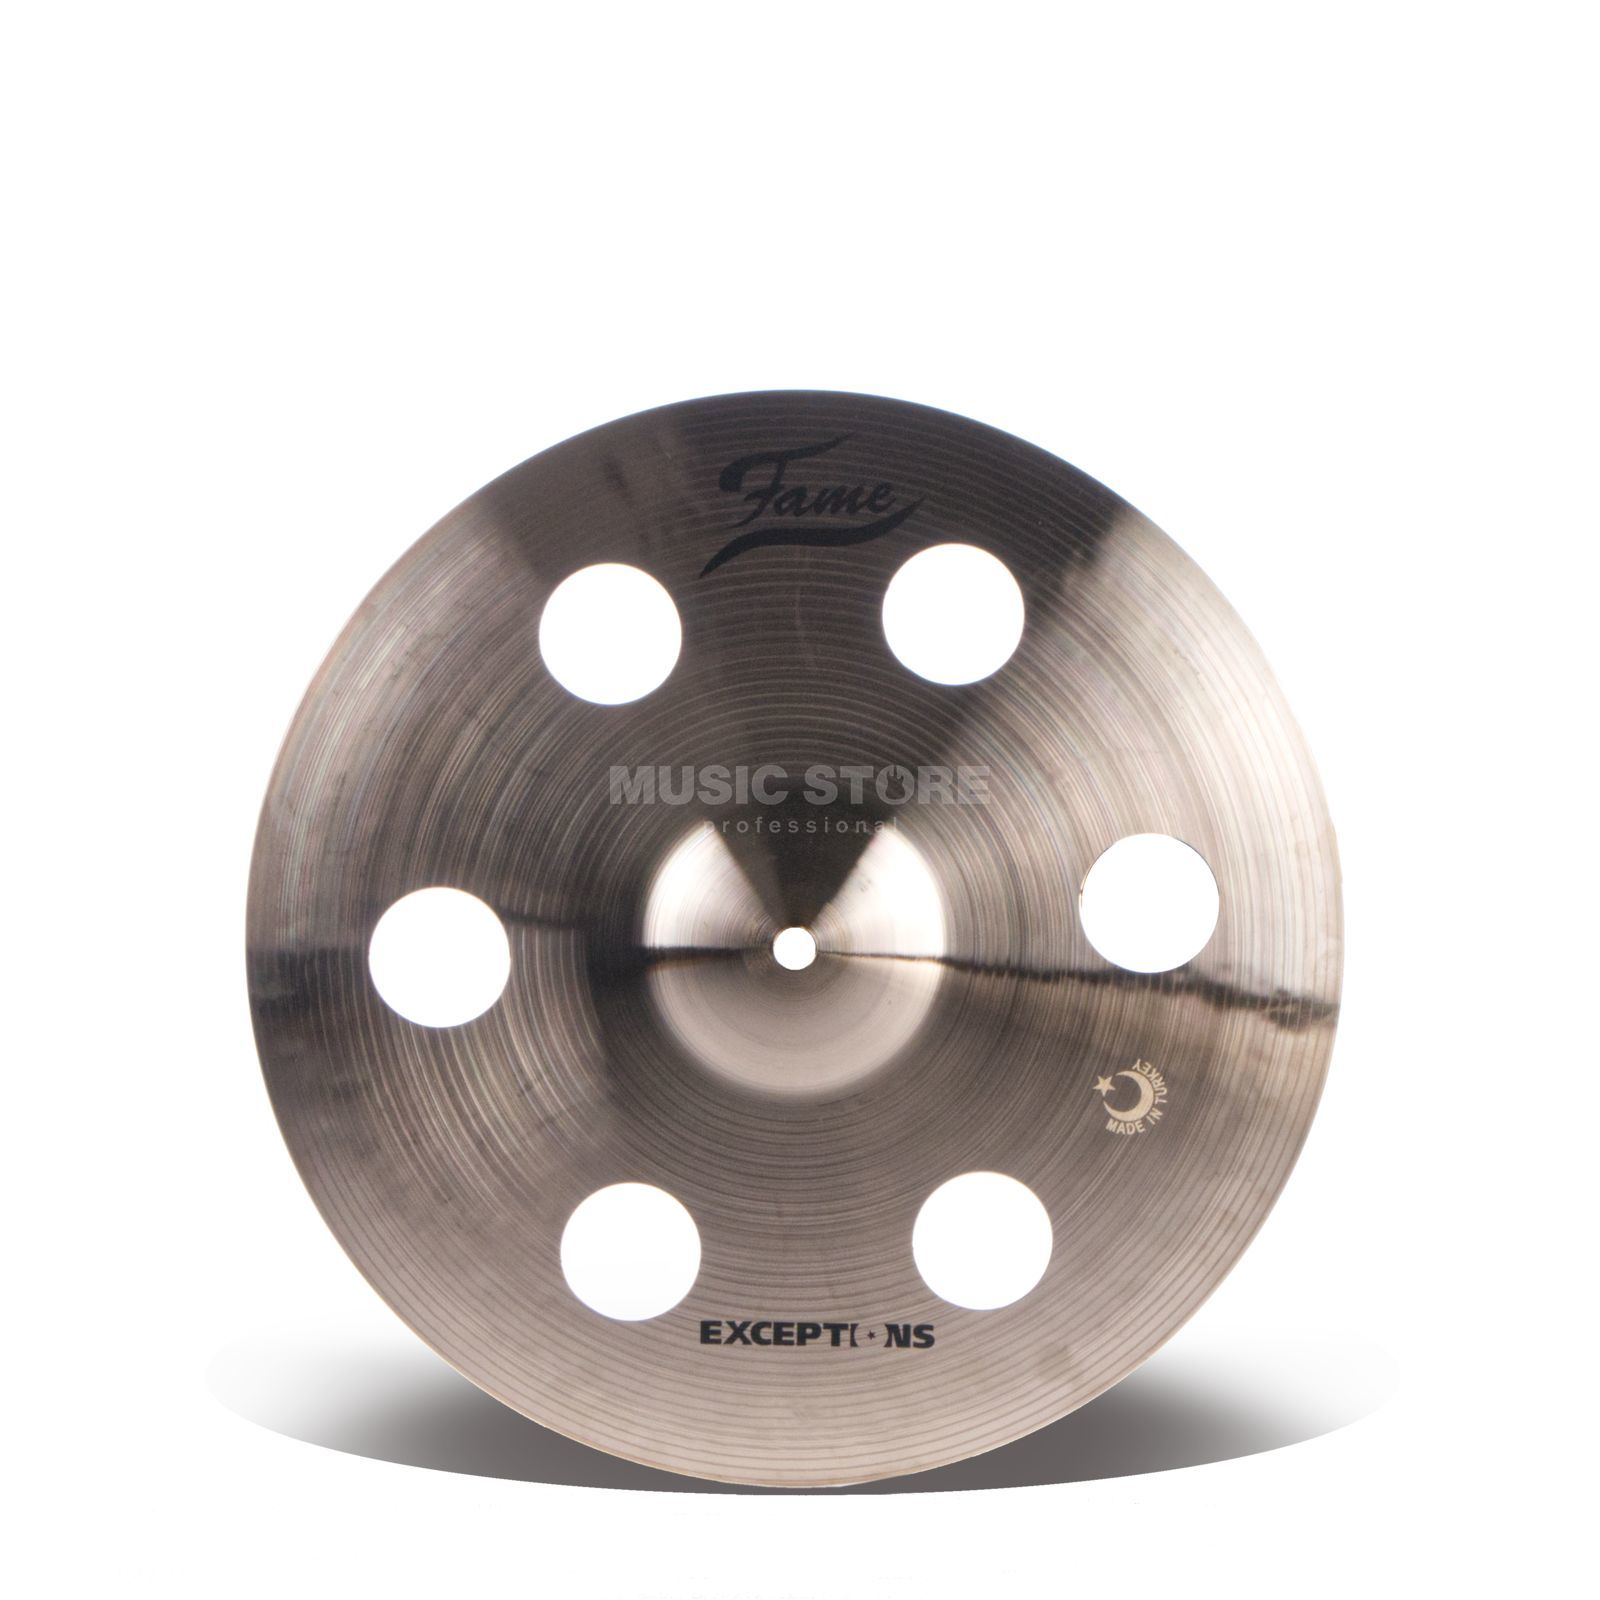 "Fame Masters B20 Holey Crash 14"" Natural Finish Imagem do produto"